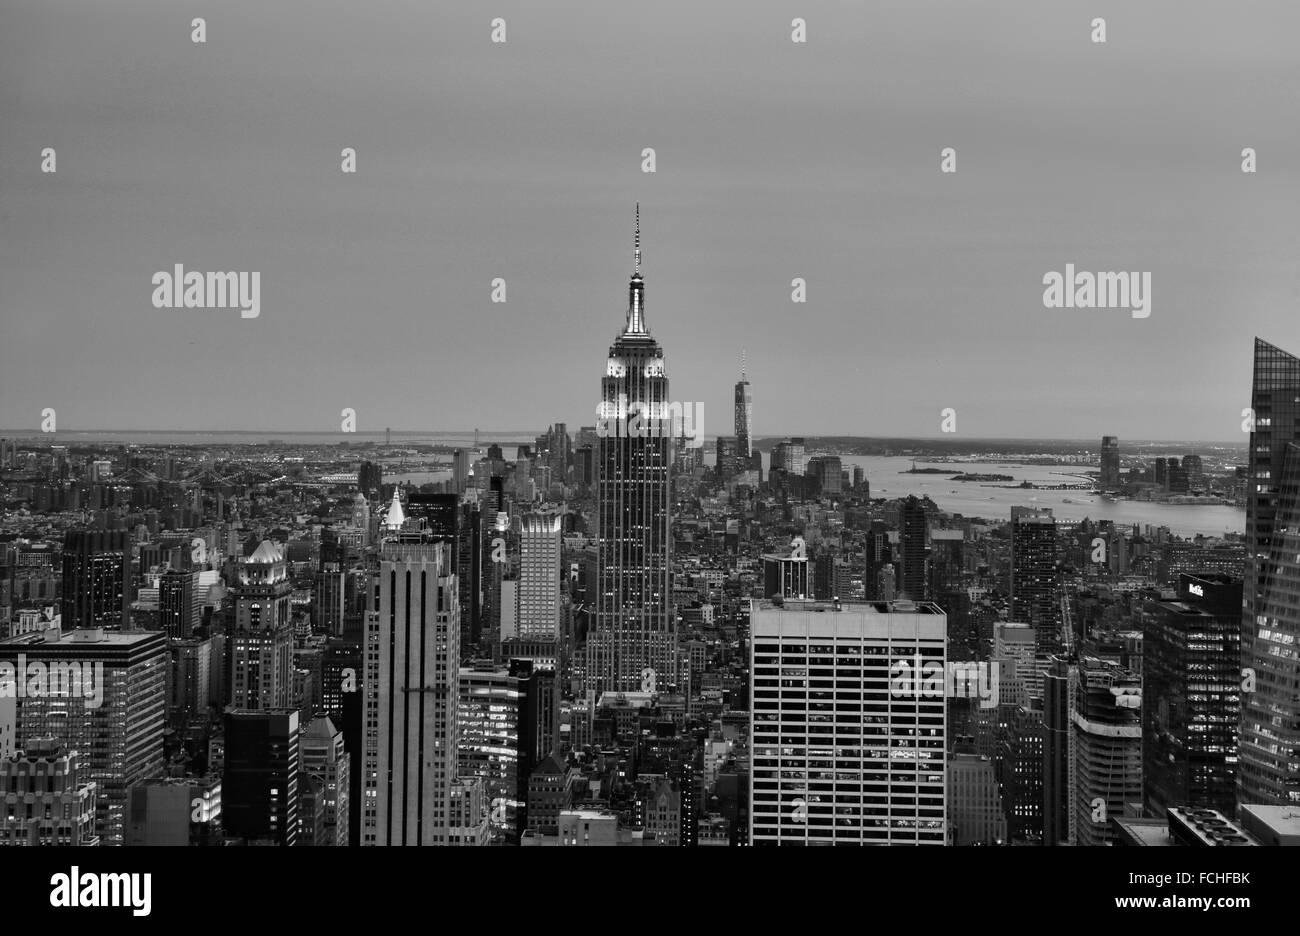 Panoramic view over Manhattan from the top of the rock, New York, USA Stock Photo